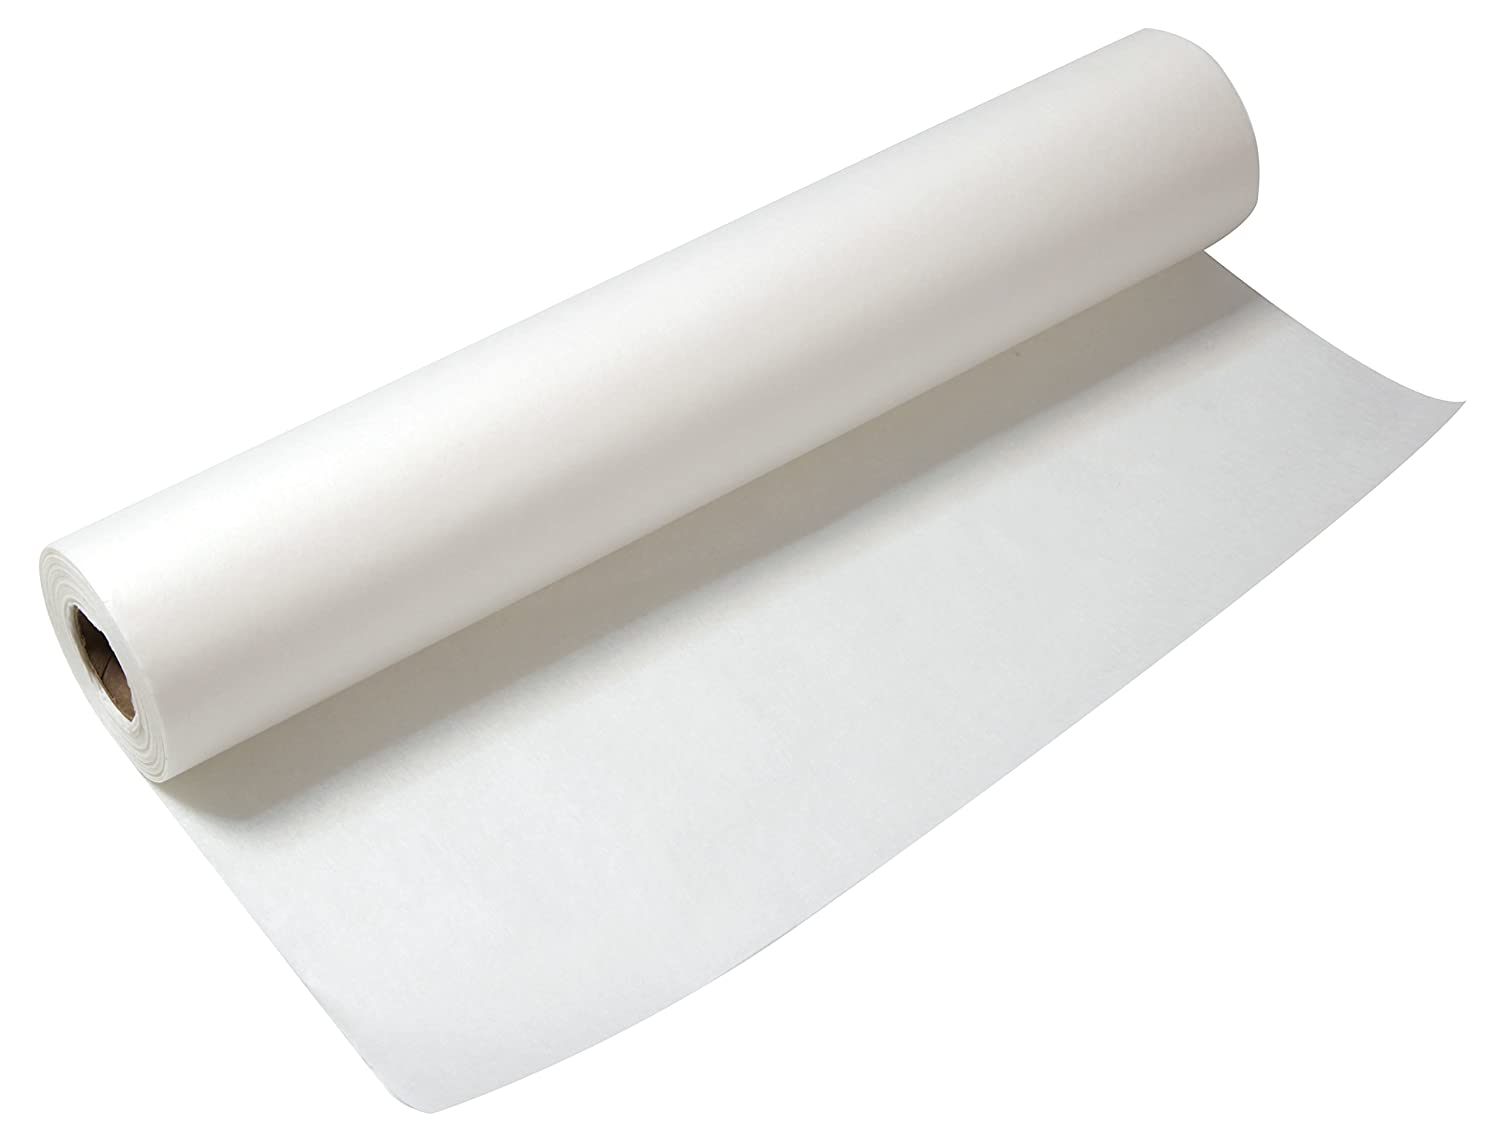 Alvin 55W-E Lightweight White Tracing Paper Roll, 30 x 20 yd 30 x 20 yd National Cellular